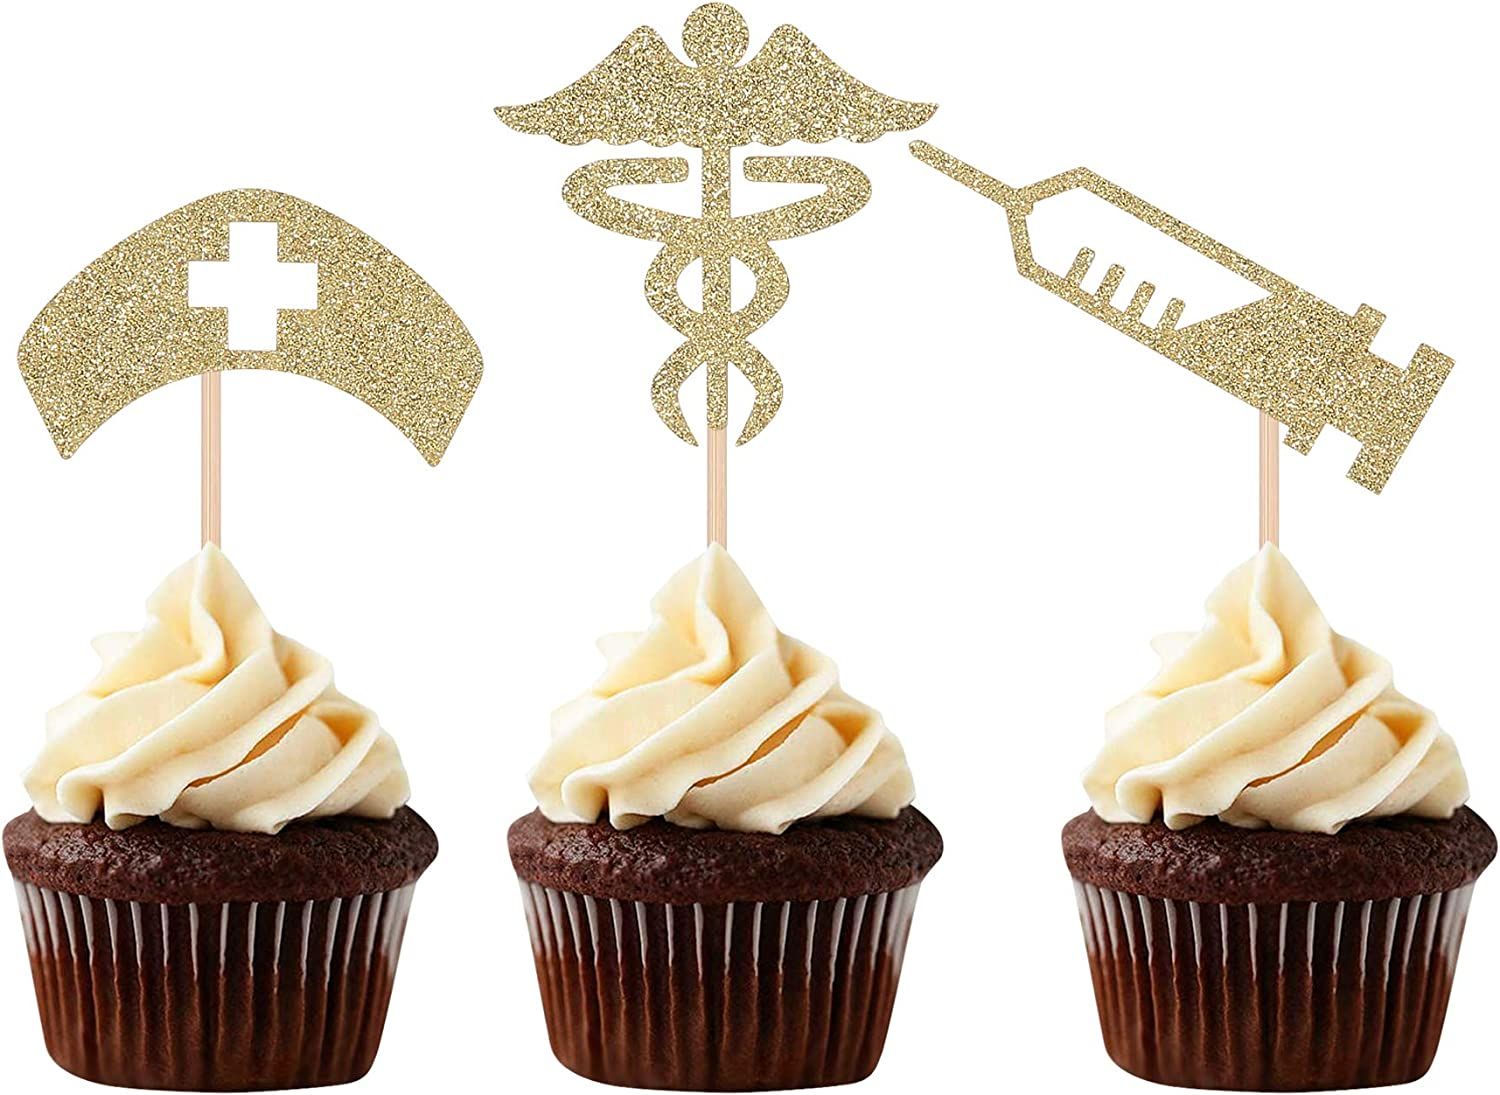 Gold Glitter Nurse Cupcake Toppers Nurse Themed Party Graduation Celebrating Decorations -24 Counts